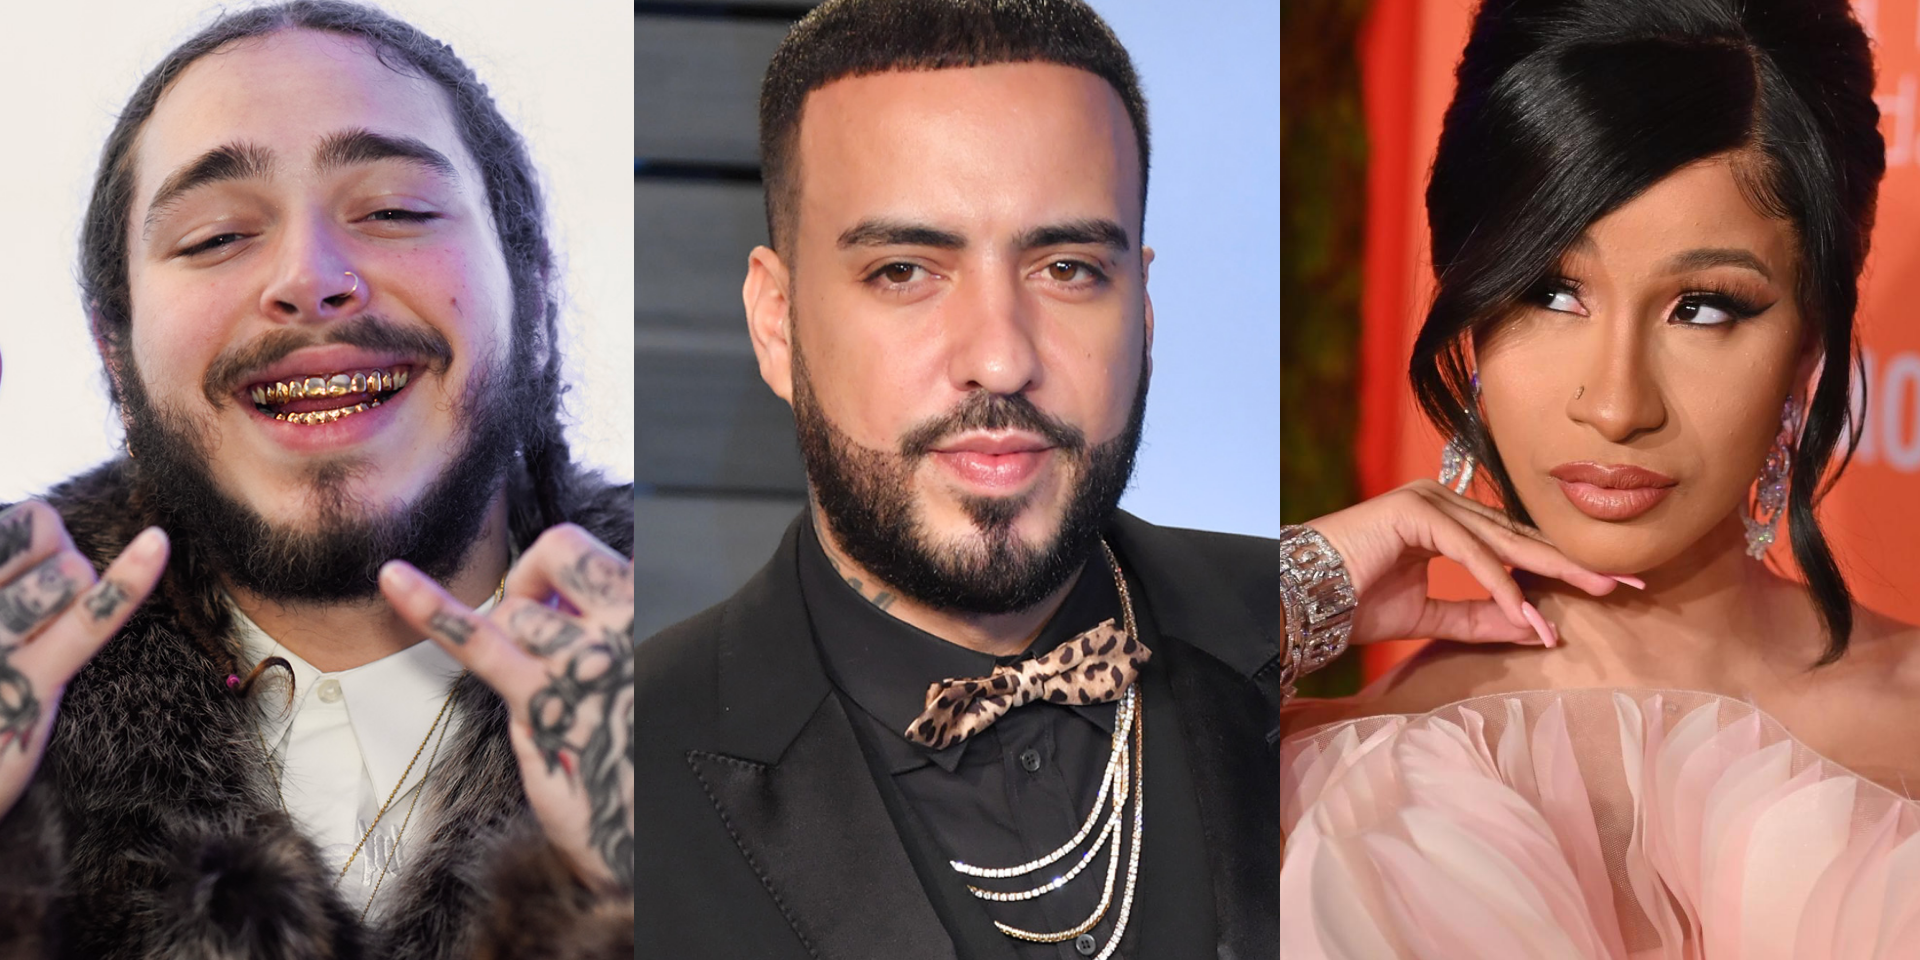 Cardi B and Post Malone join French Montana on an epic new single 'Writing on the Wall'